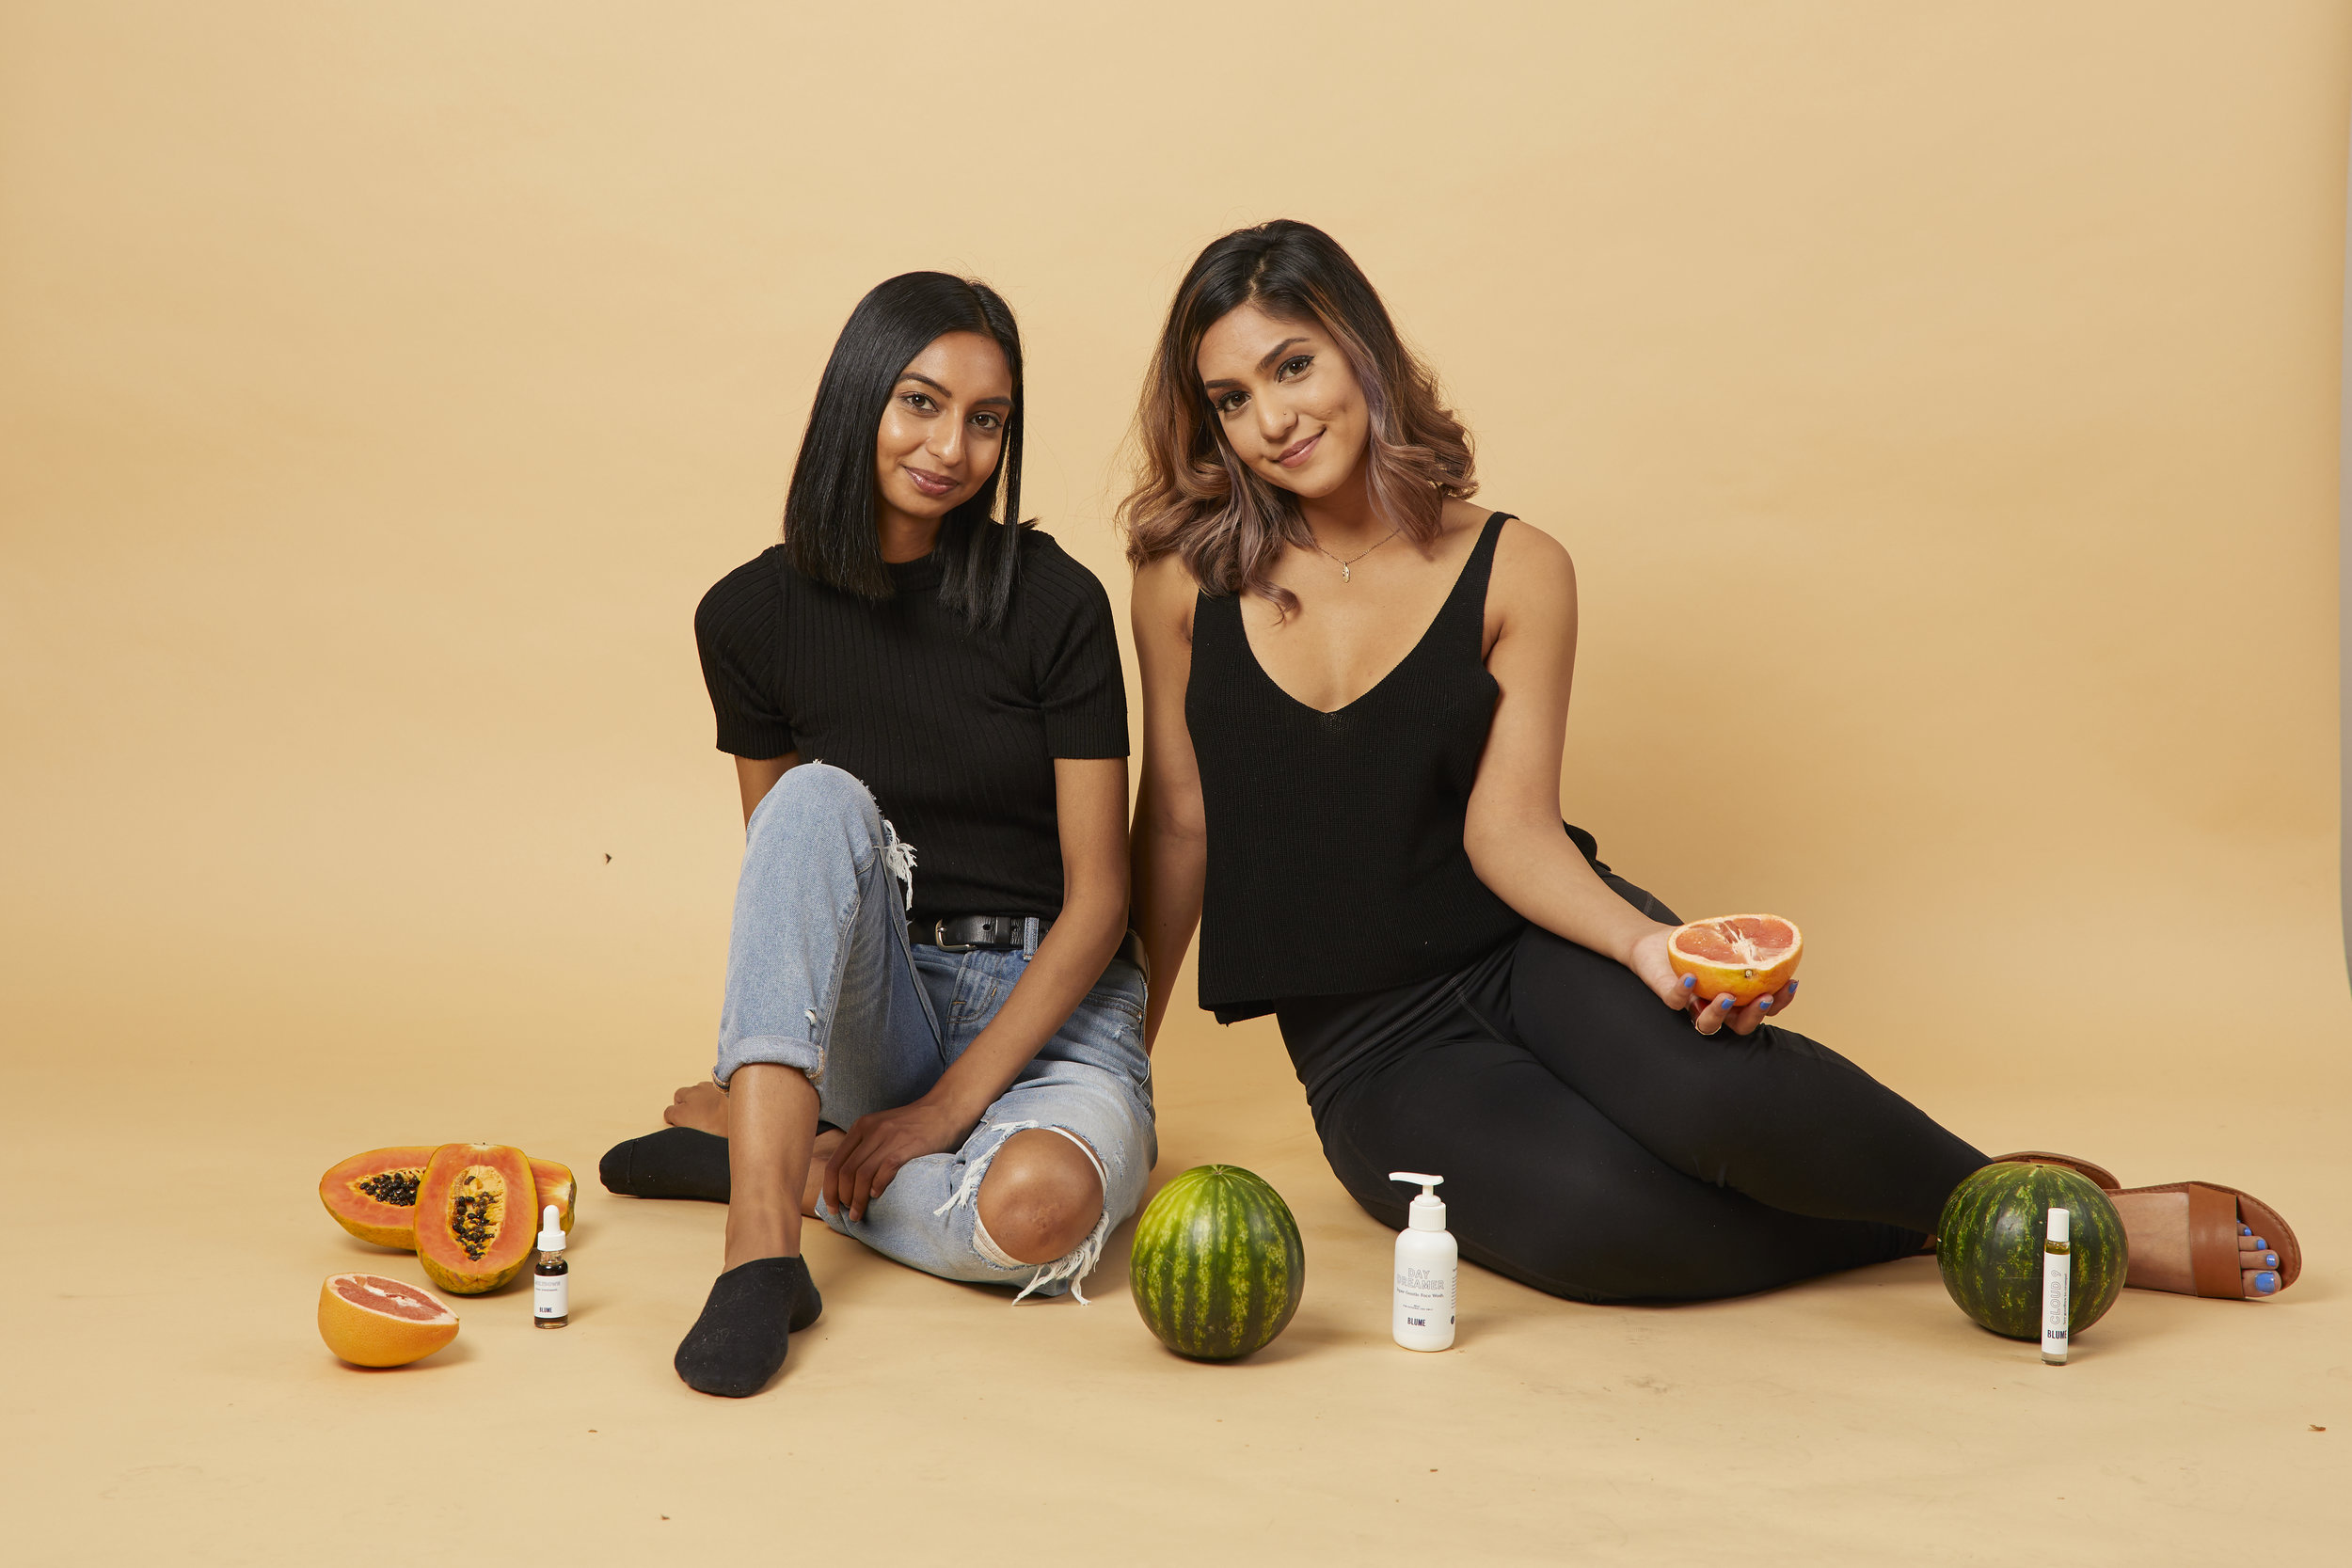 Taran & Bunny @ Blume: first ever cohesive line of personal care products for Gen Z girls \ we rule werule entrepreneurs business girlboss community founders